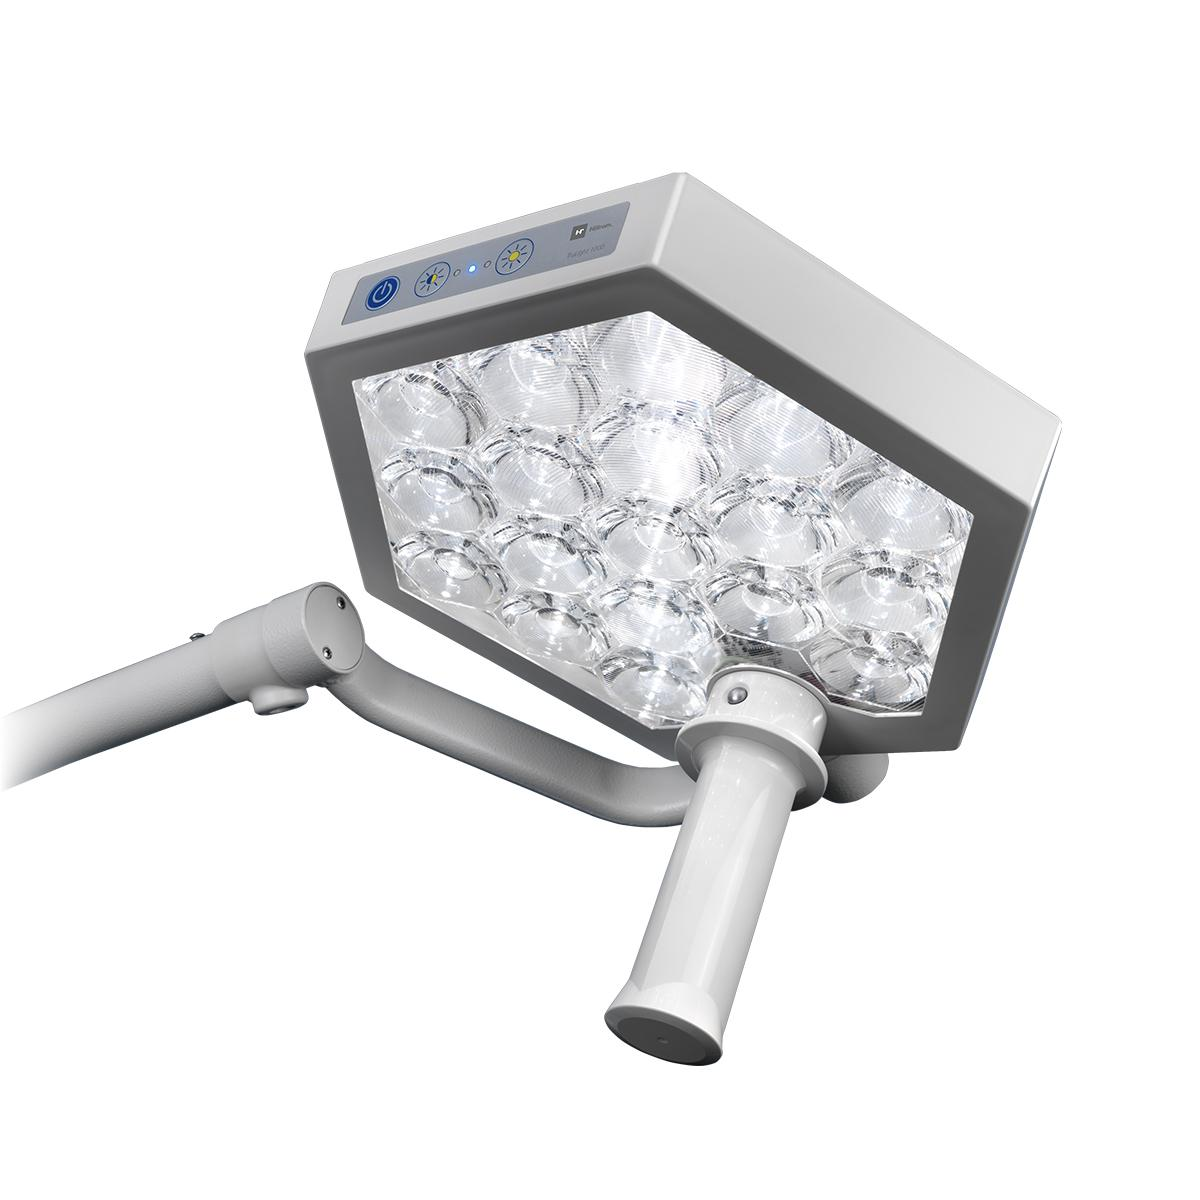 TL1000 Exam Light front view